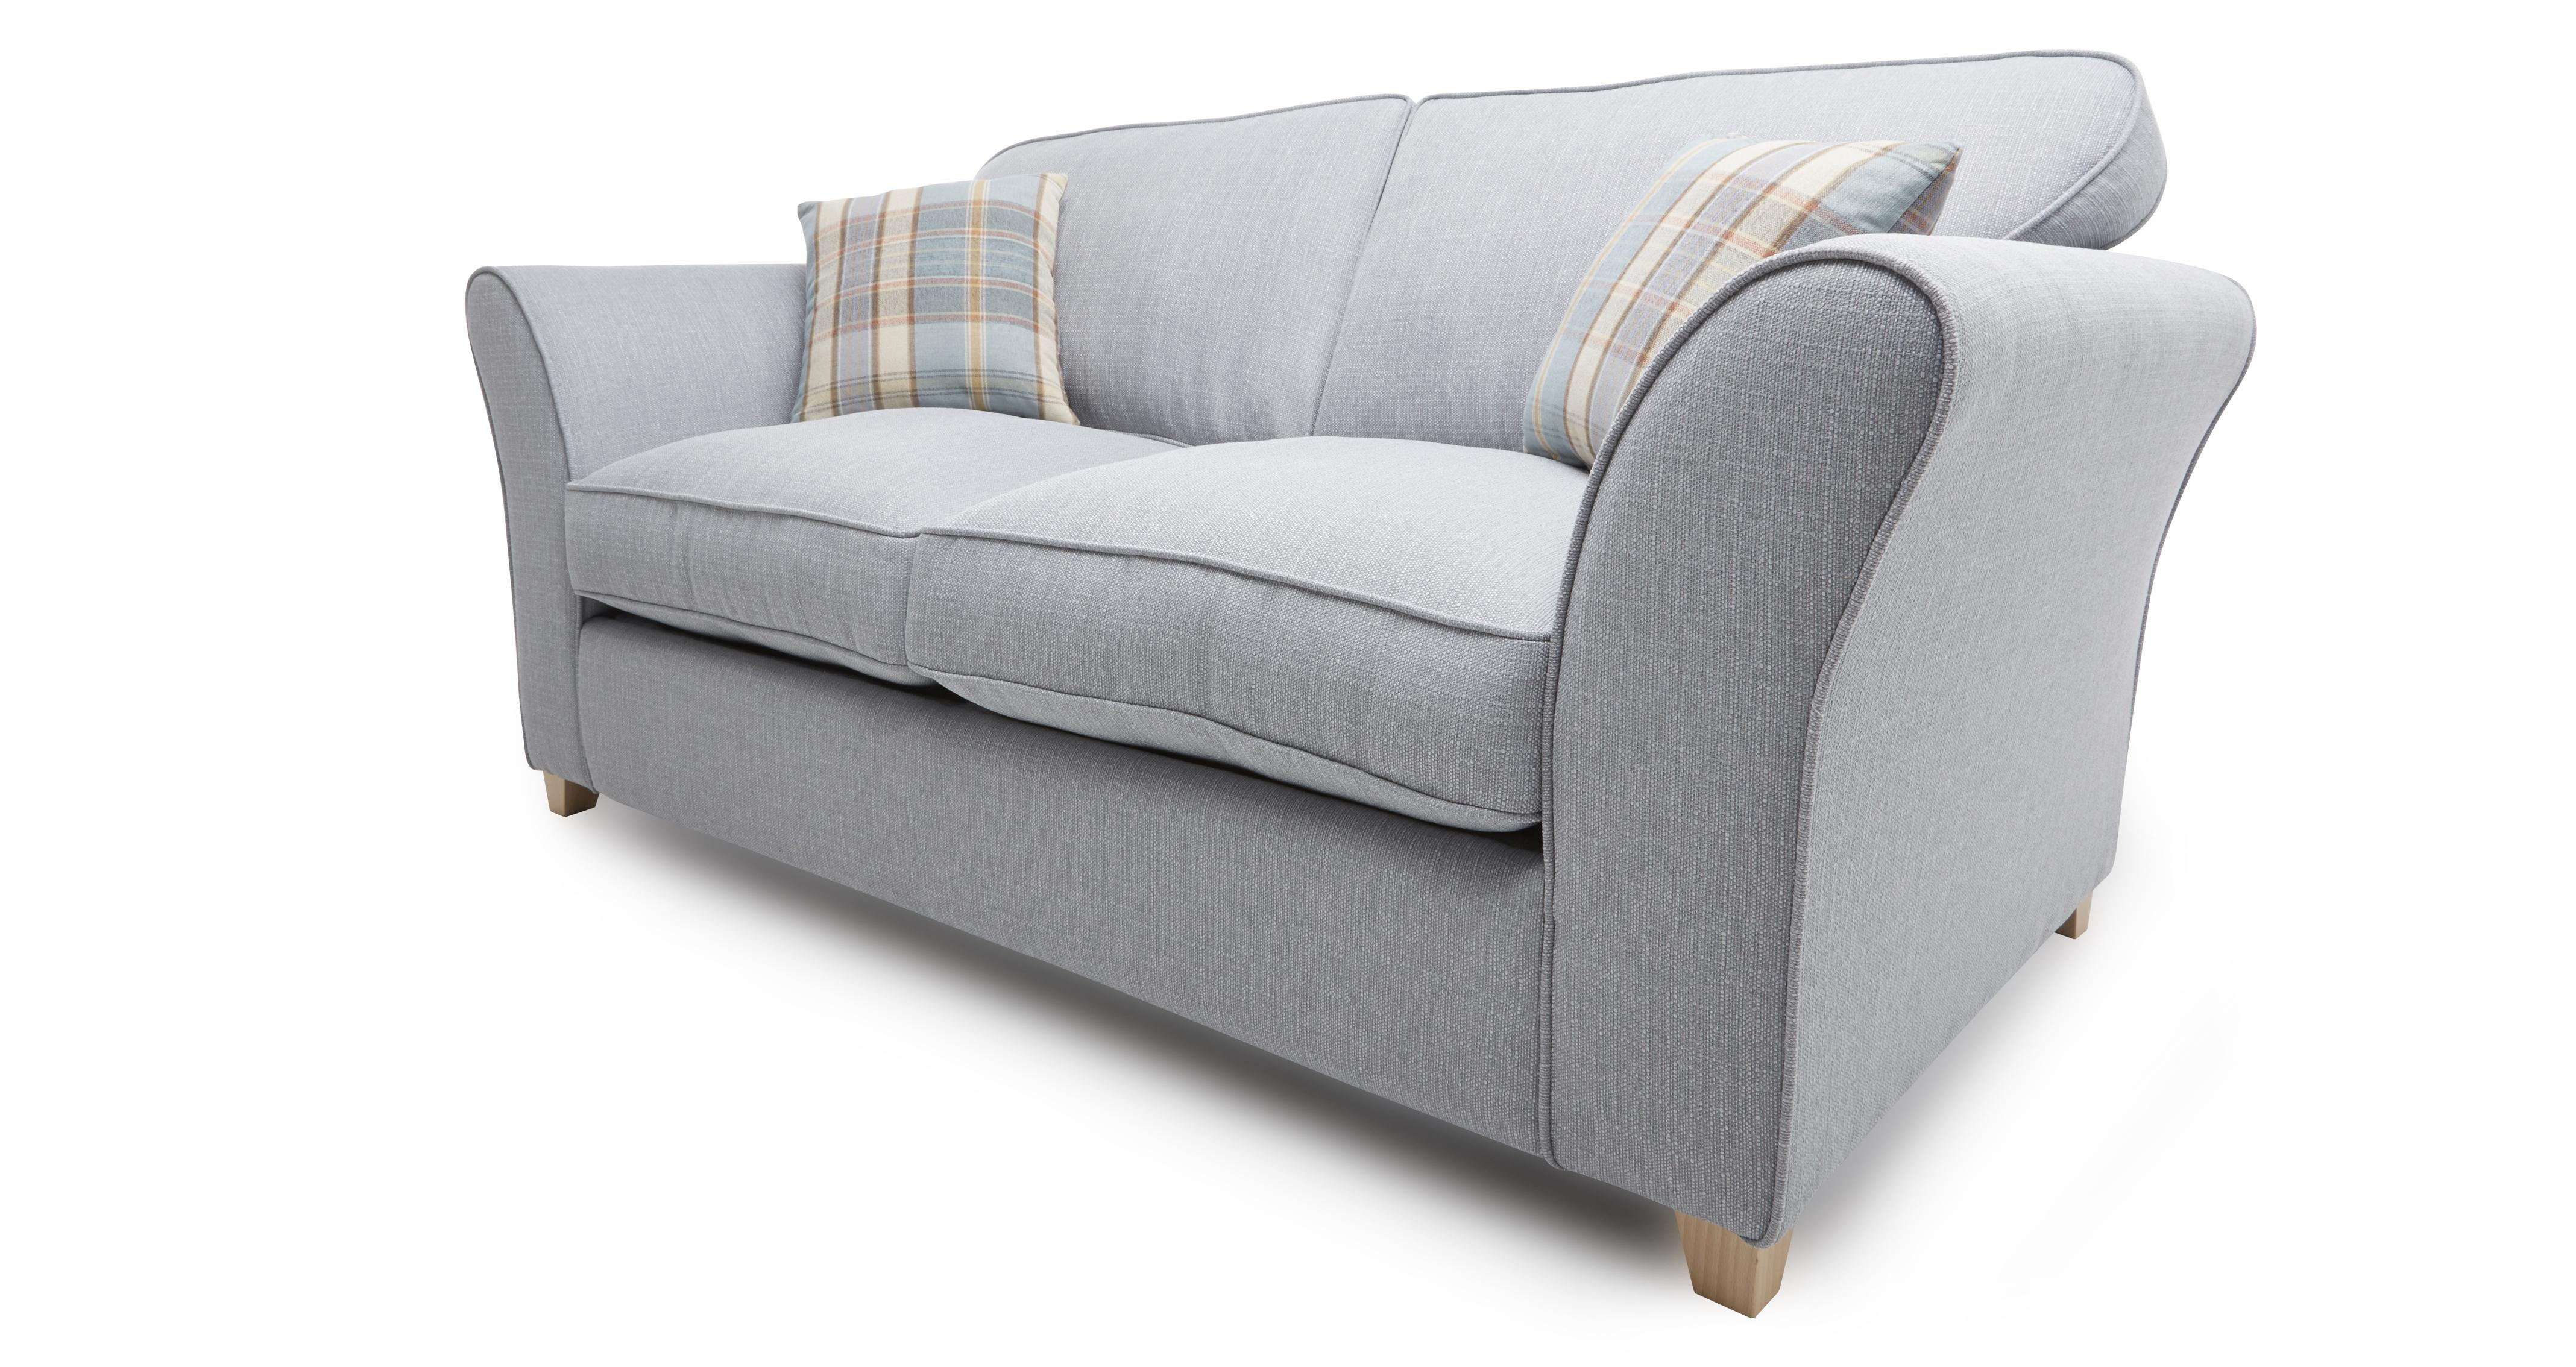 Dfs Brixham Blue Fabric 2 Seater Sofa Bed Blue Pattern